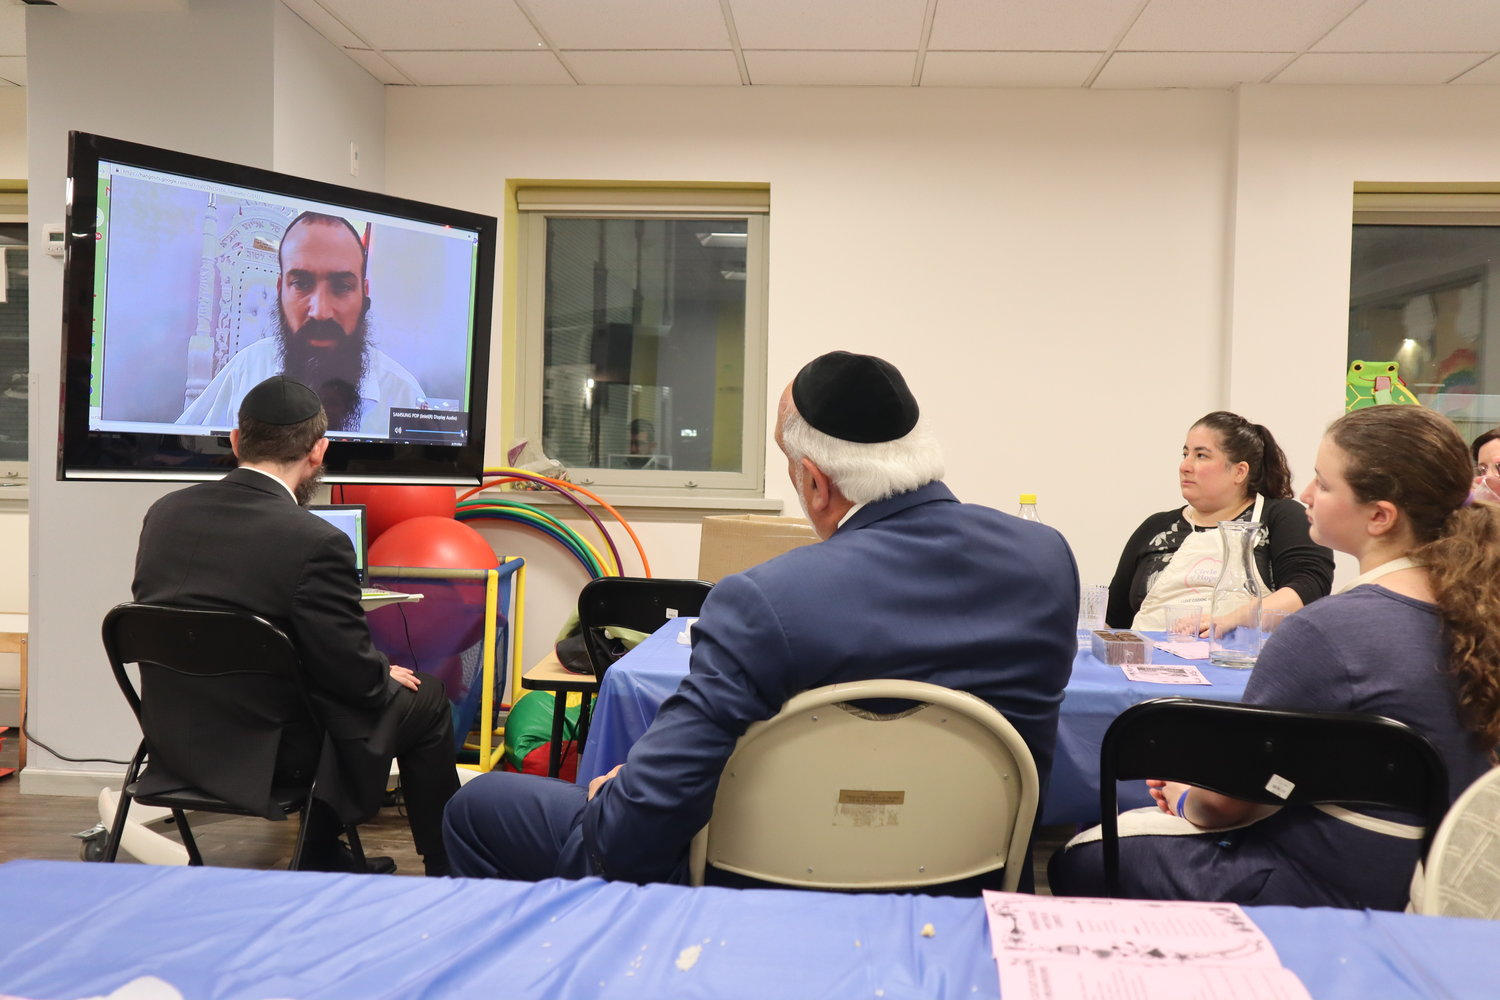 Assistant Rabbi Mendy Rubenfeld, from the Poway Chabad, called in to speak with members of the Chabad Center for Jewish Life, offering a message of hope. He showed congregants the hundreds of flowers left outside and notes of love posted all over the walls.